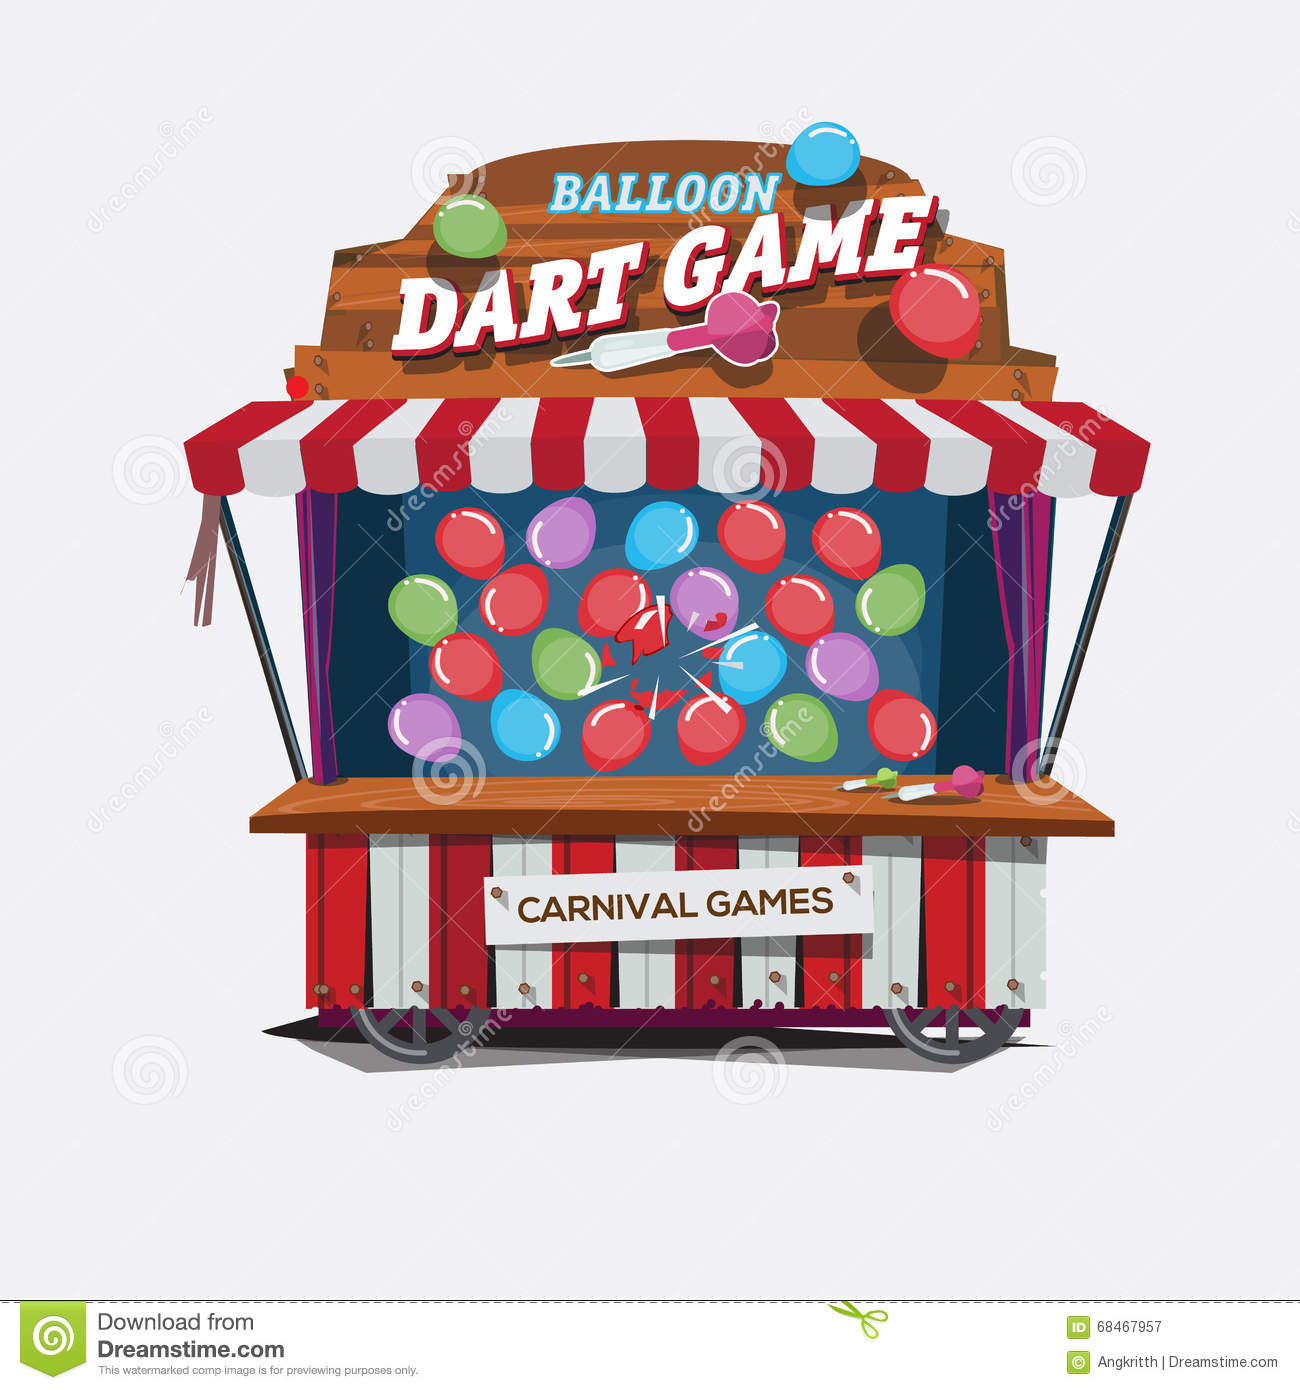 Balloons Dart Game Carnival Cart Concept Stock Image Image Of